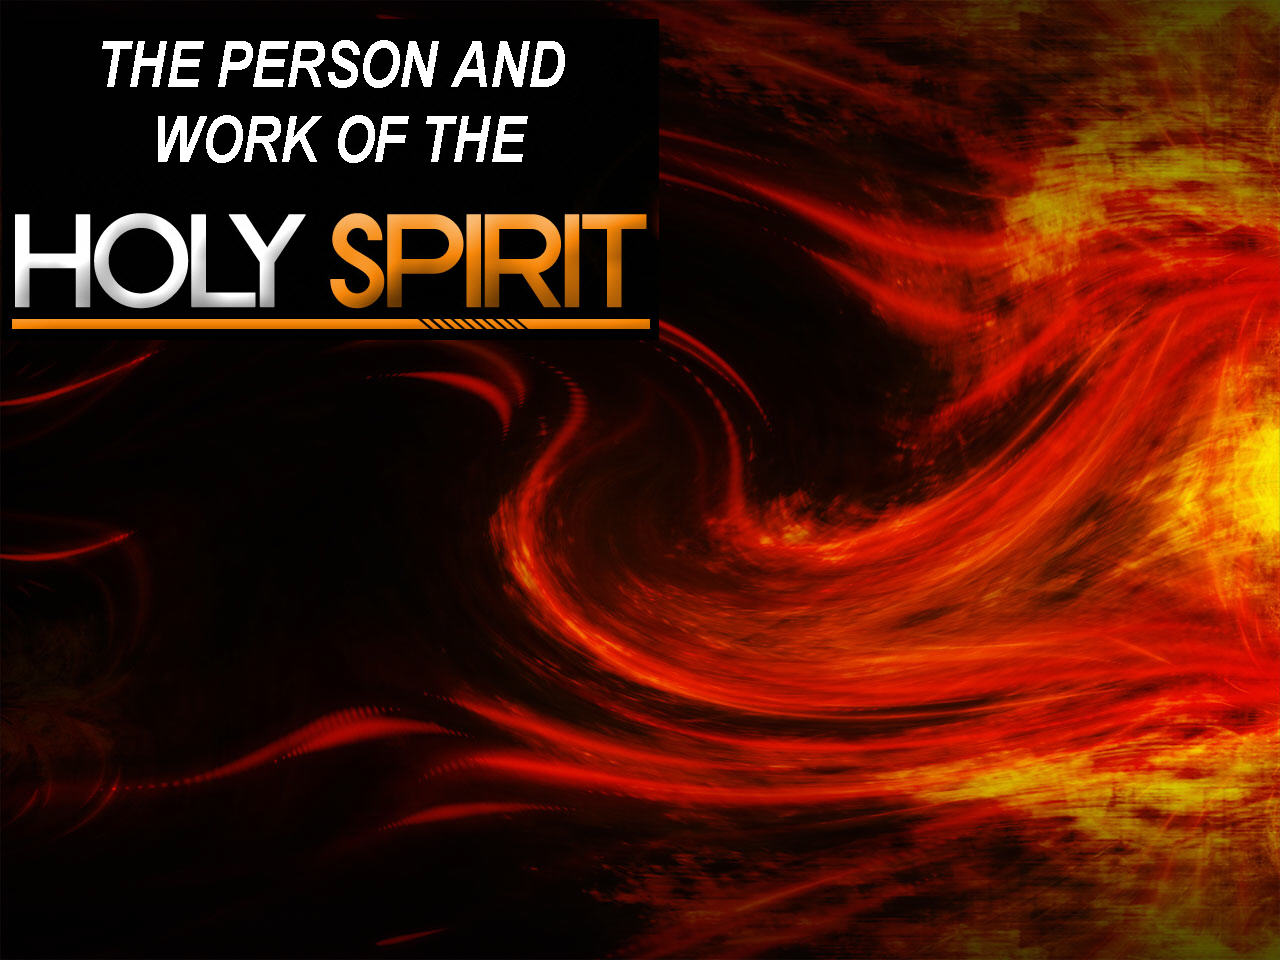 Gods breath publications the person and work of the holy spirit the person and work of the holy spirit thecheapjerseys Gallery